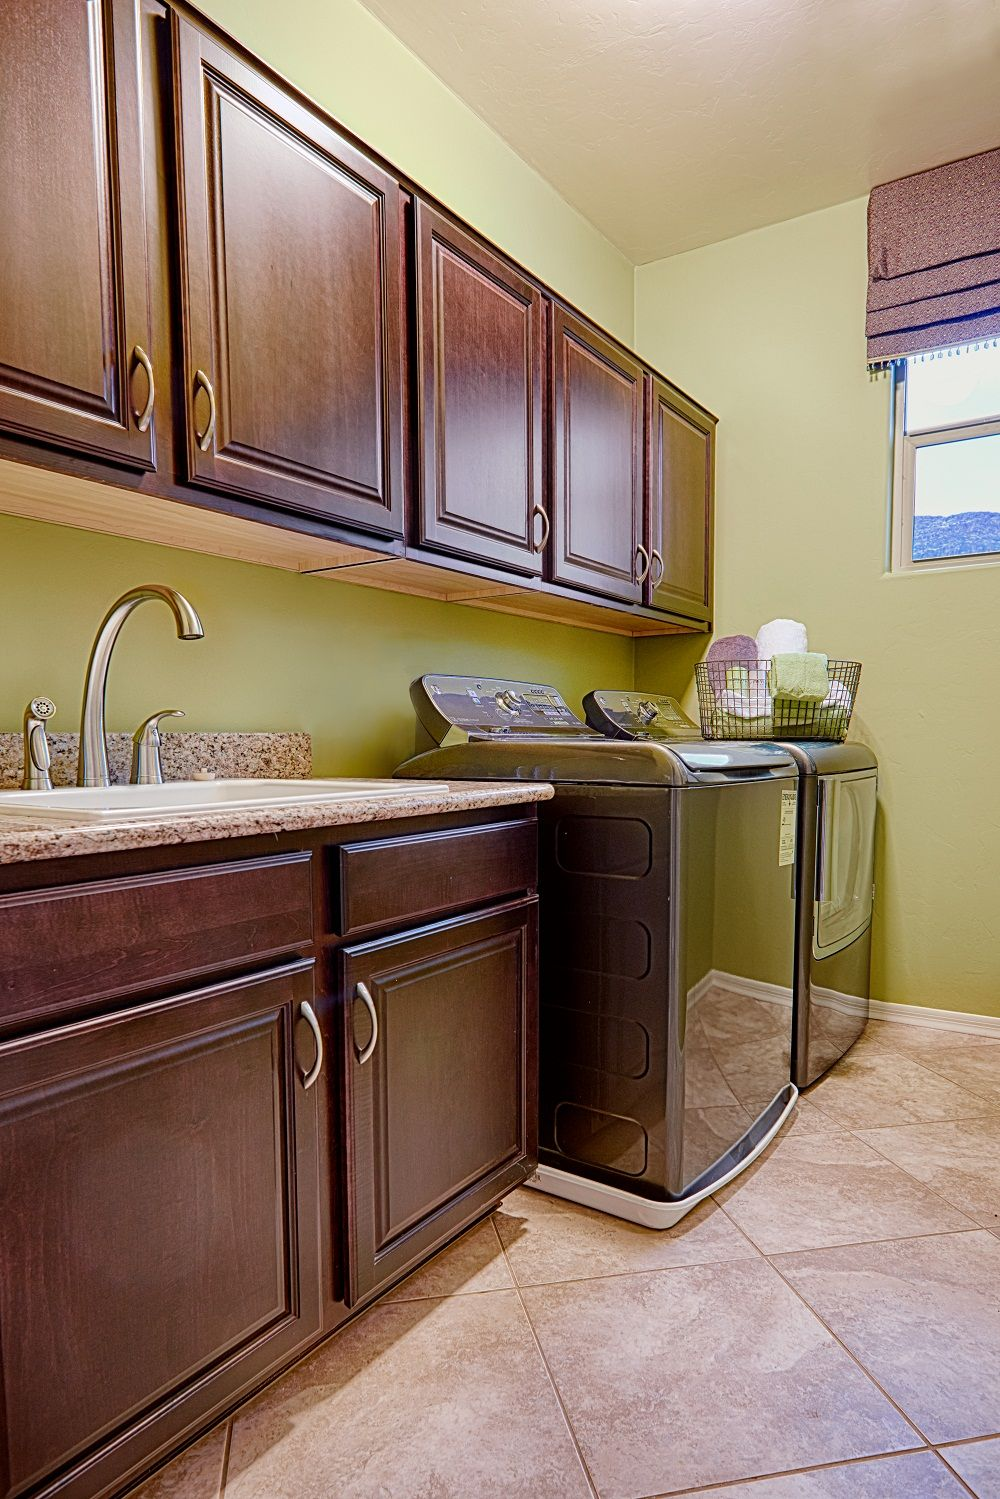 Laundry Room With Cabinets Sink Tile Floor And Window Brittney